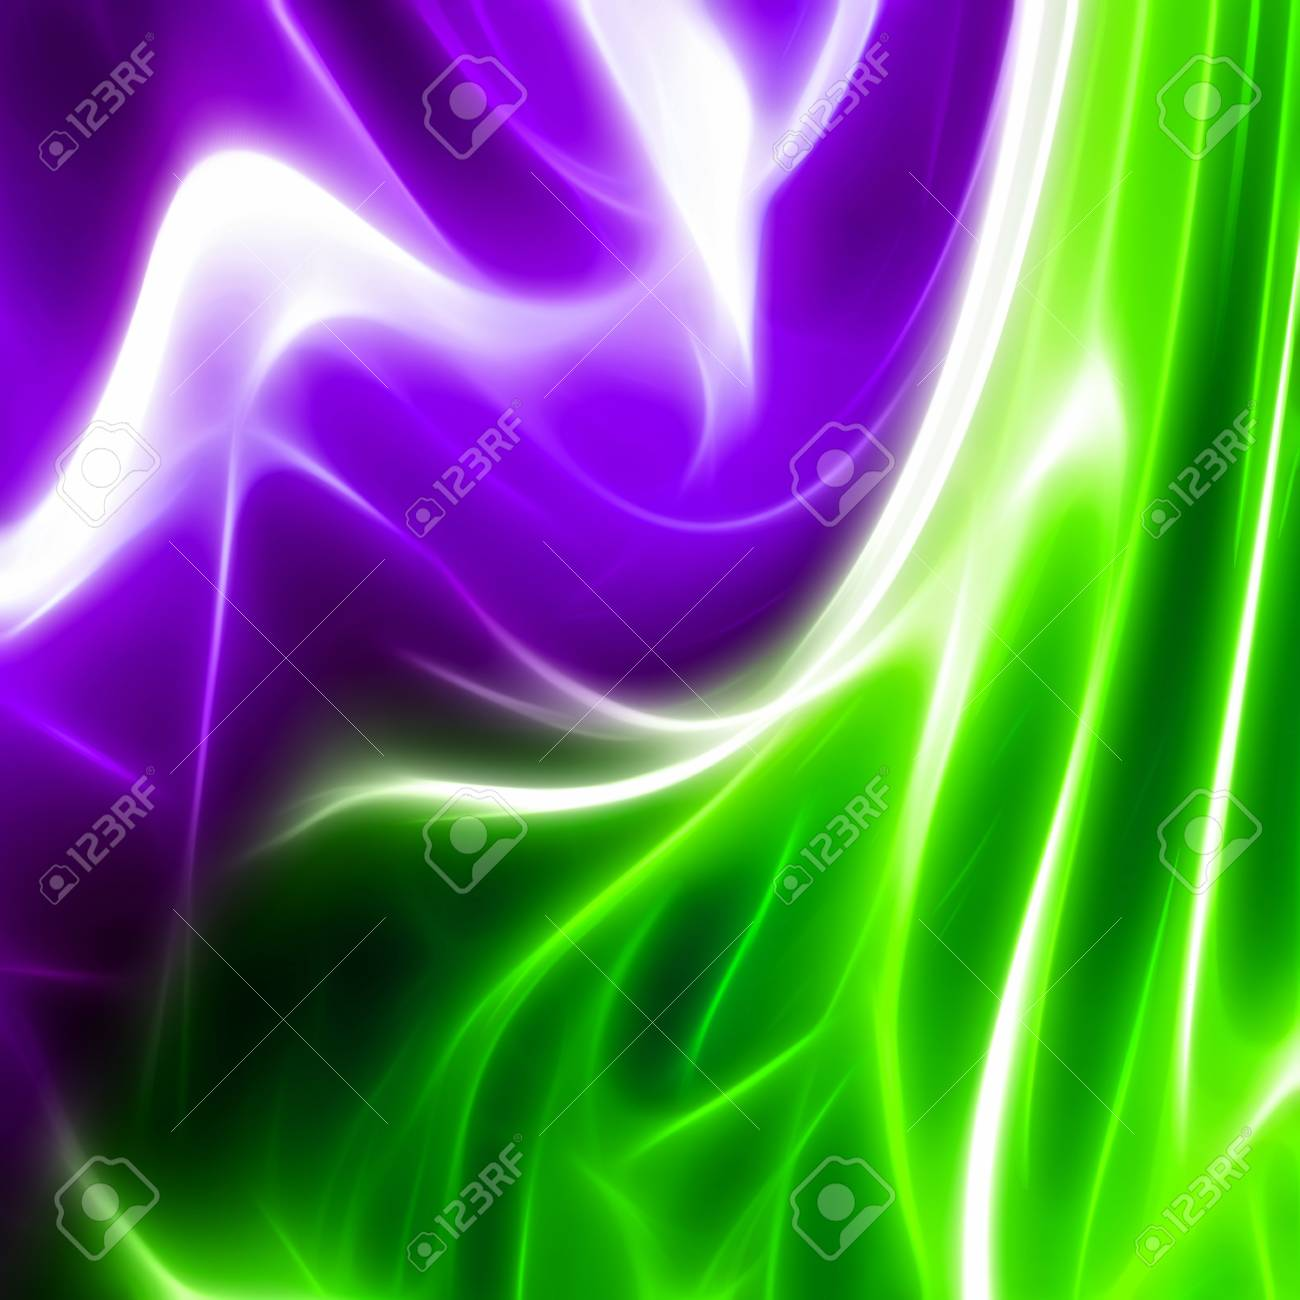 Abstract background. Stock Photo - 4045182